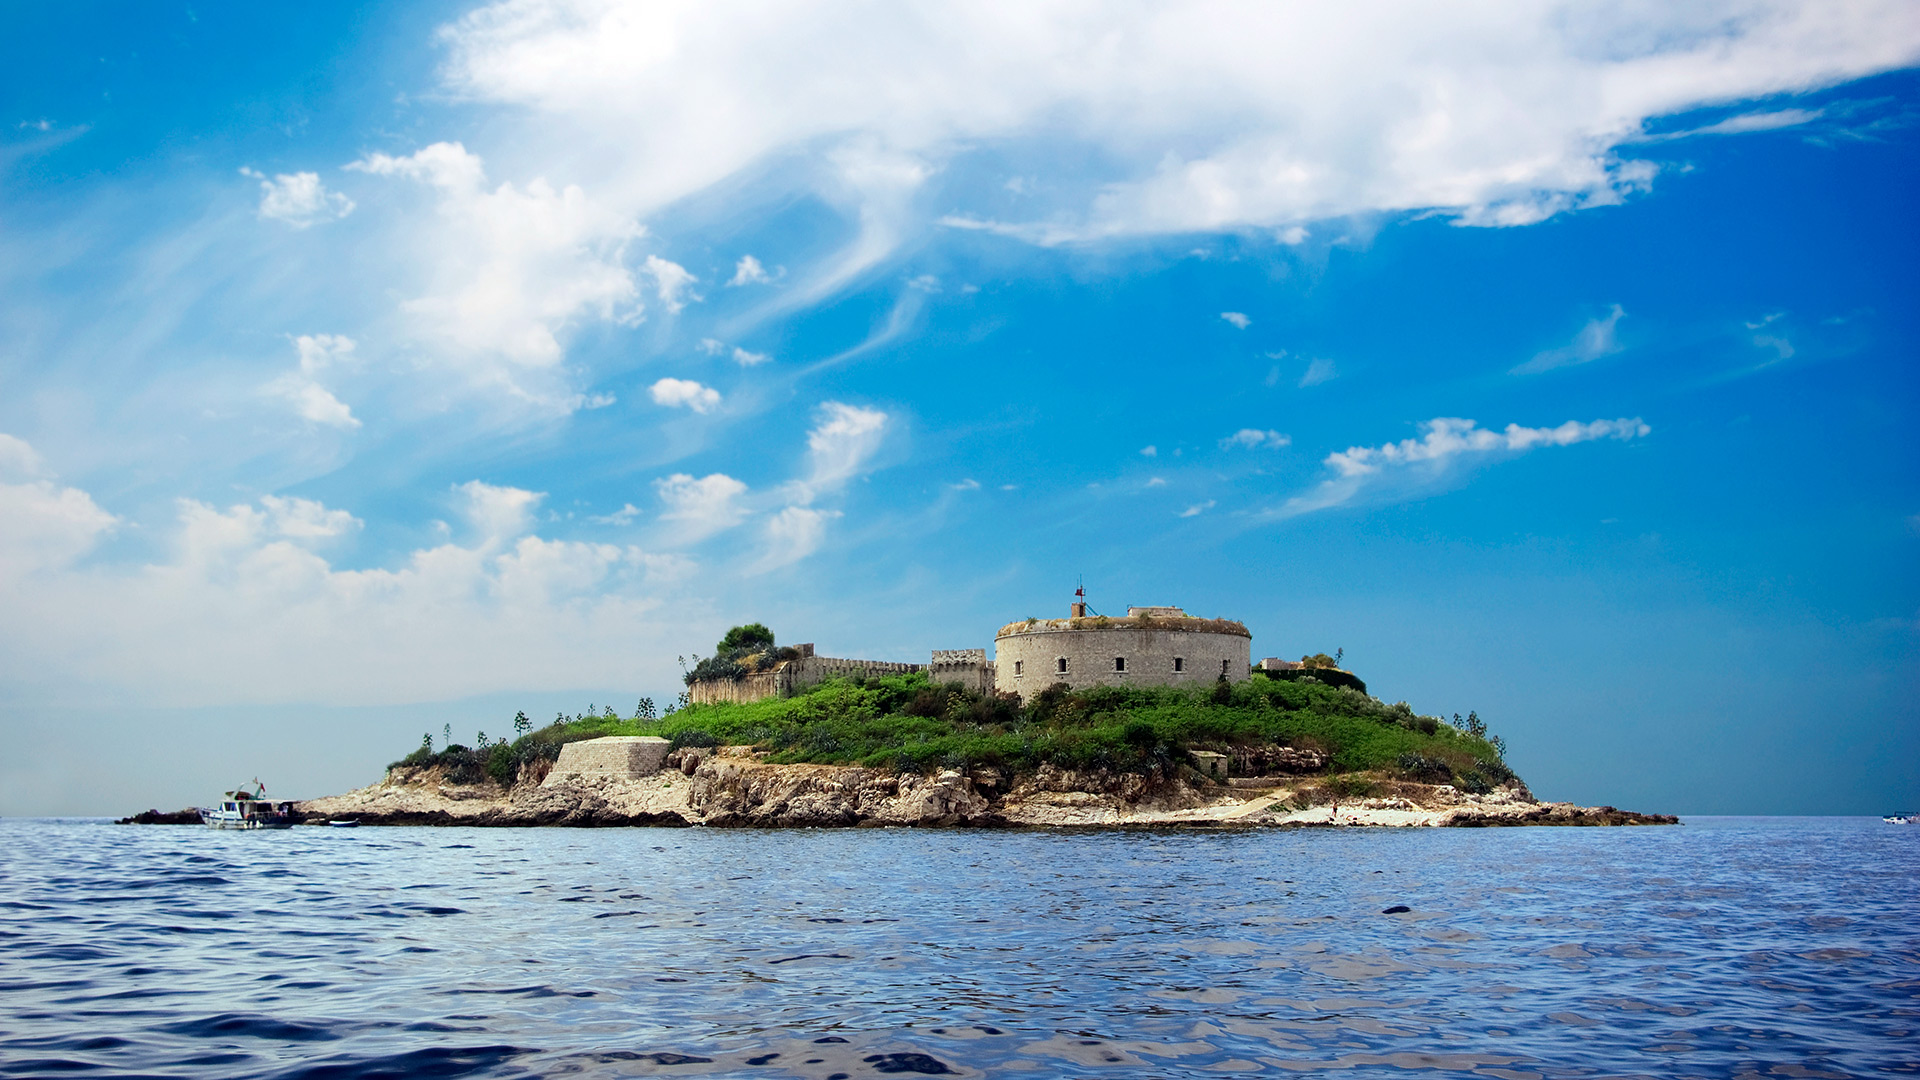 The island Mamula with fort, Kotor Bay, Montenegro - Montenegrin waters SimpleSail sailing routes